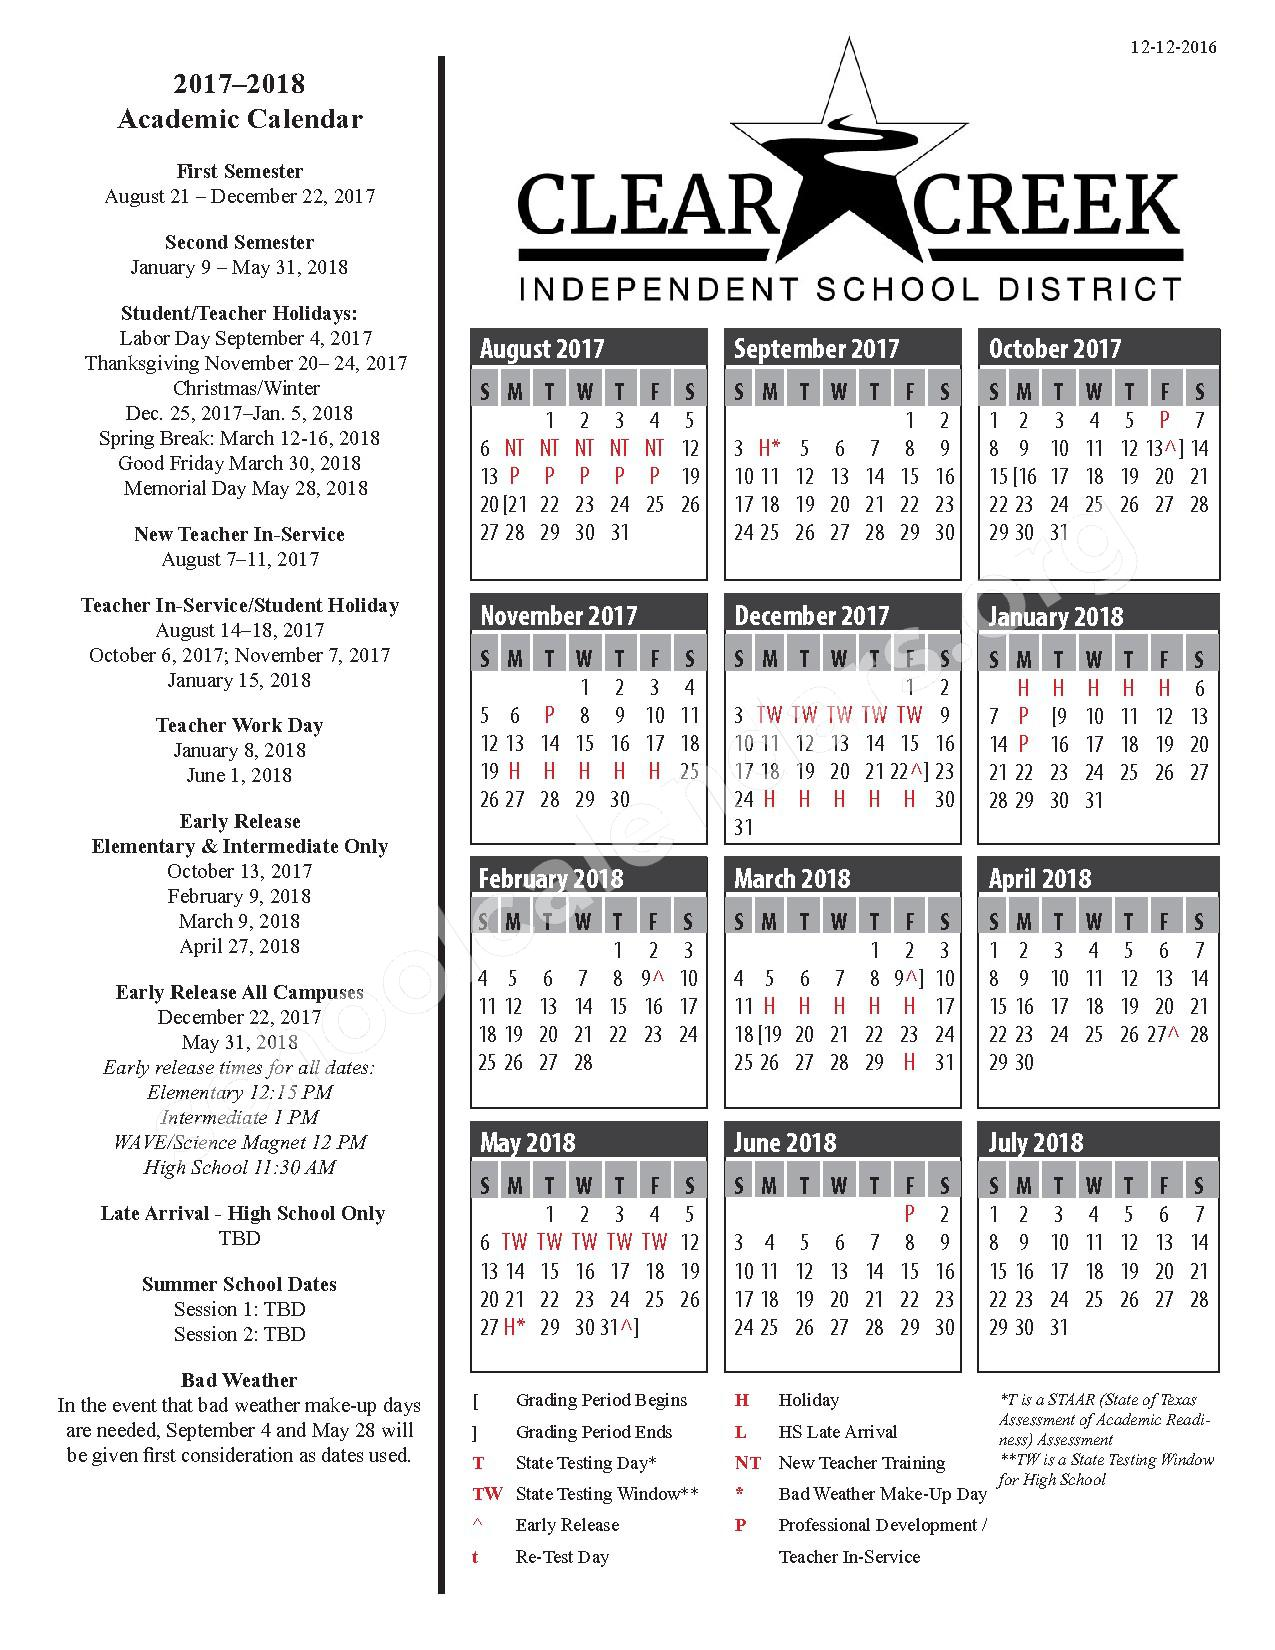 2017 - 2018 Academic Calendar – Clear Creek Independent School District – page 1